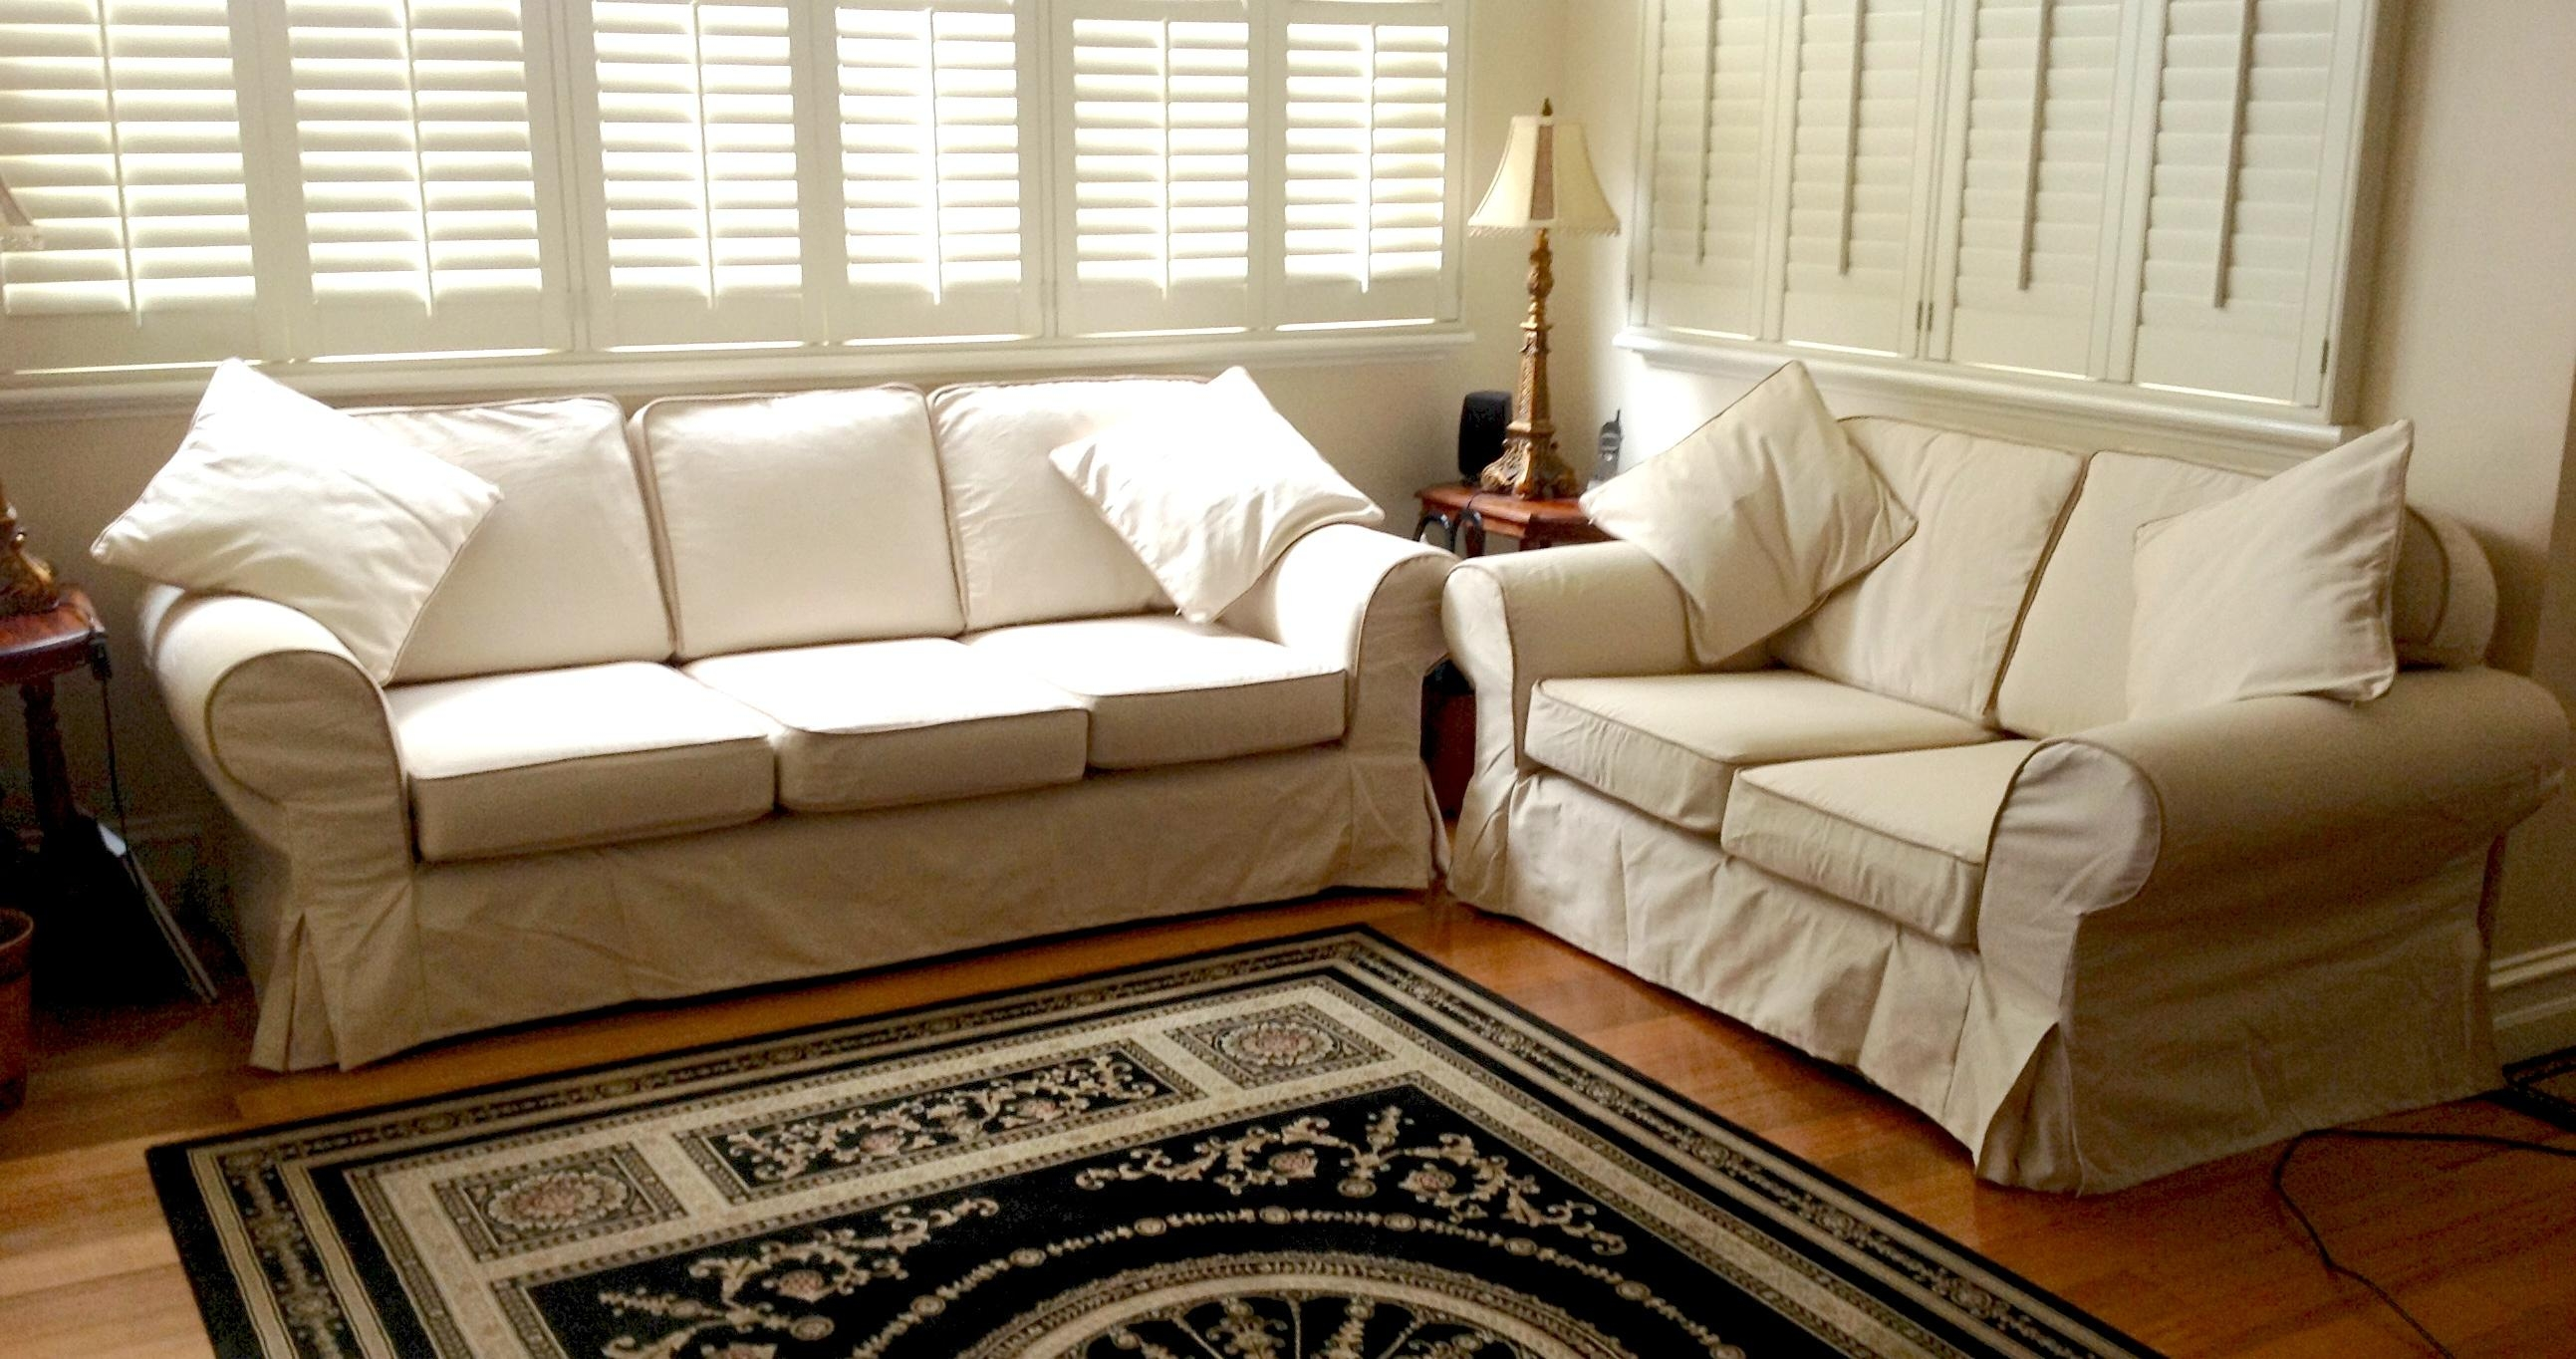 Custom Slipcovers And Couch Cover For Any Sofa Online With Canvas Sofas Covers (Image 6 of 20)